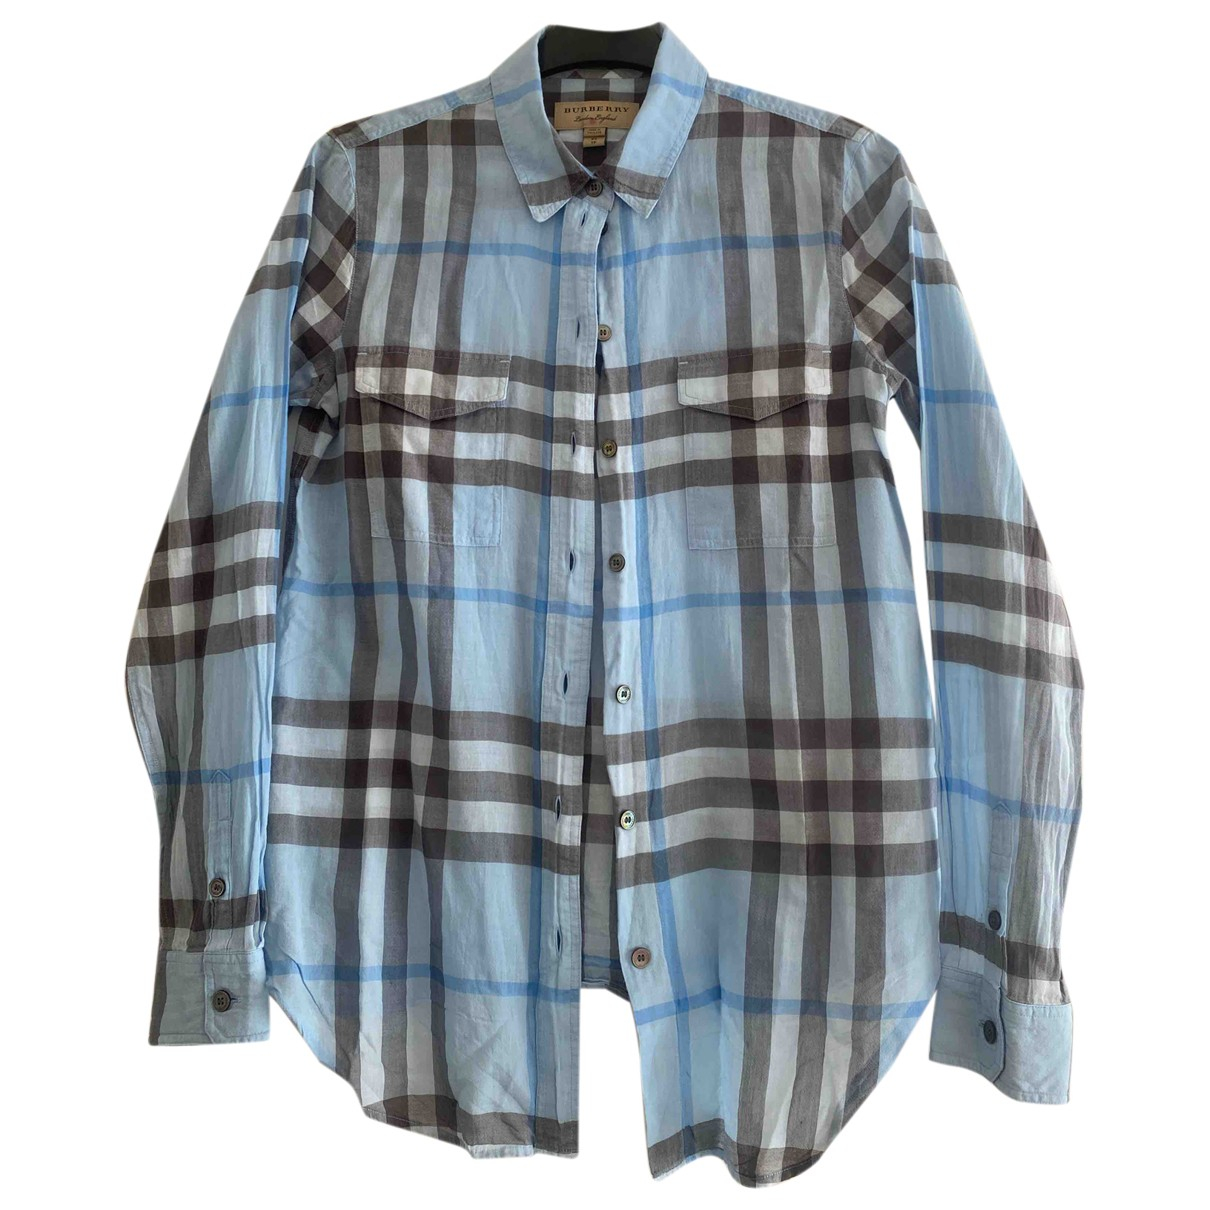 Burberry \N Blue Cotton  top for Women 34 FR